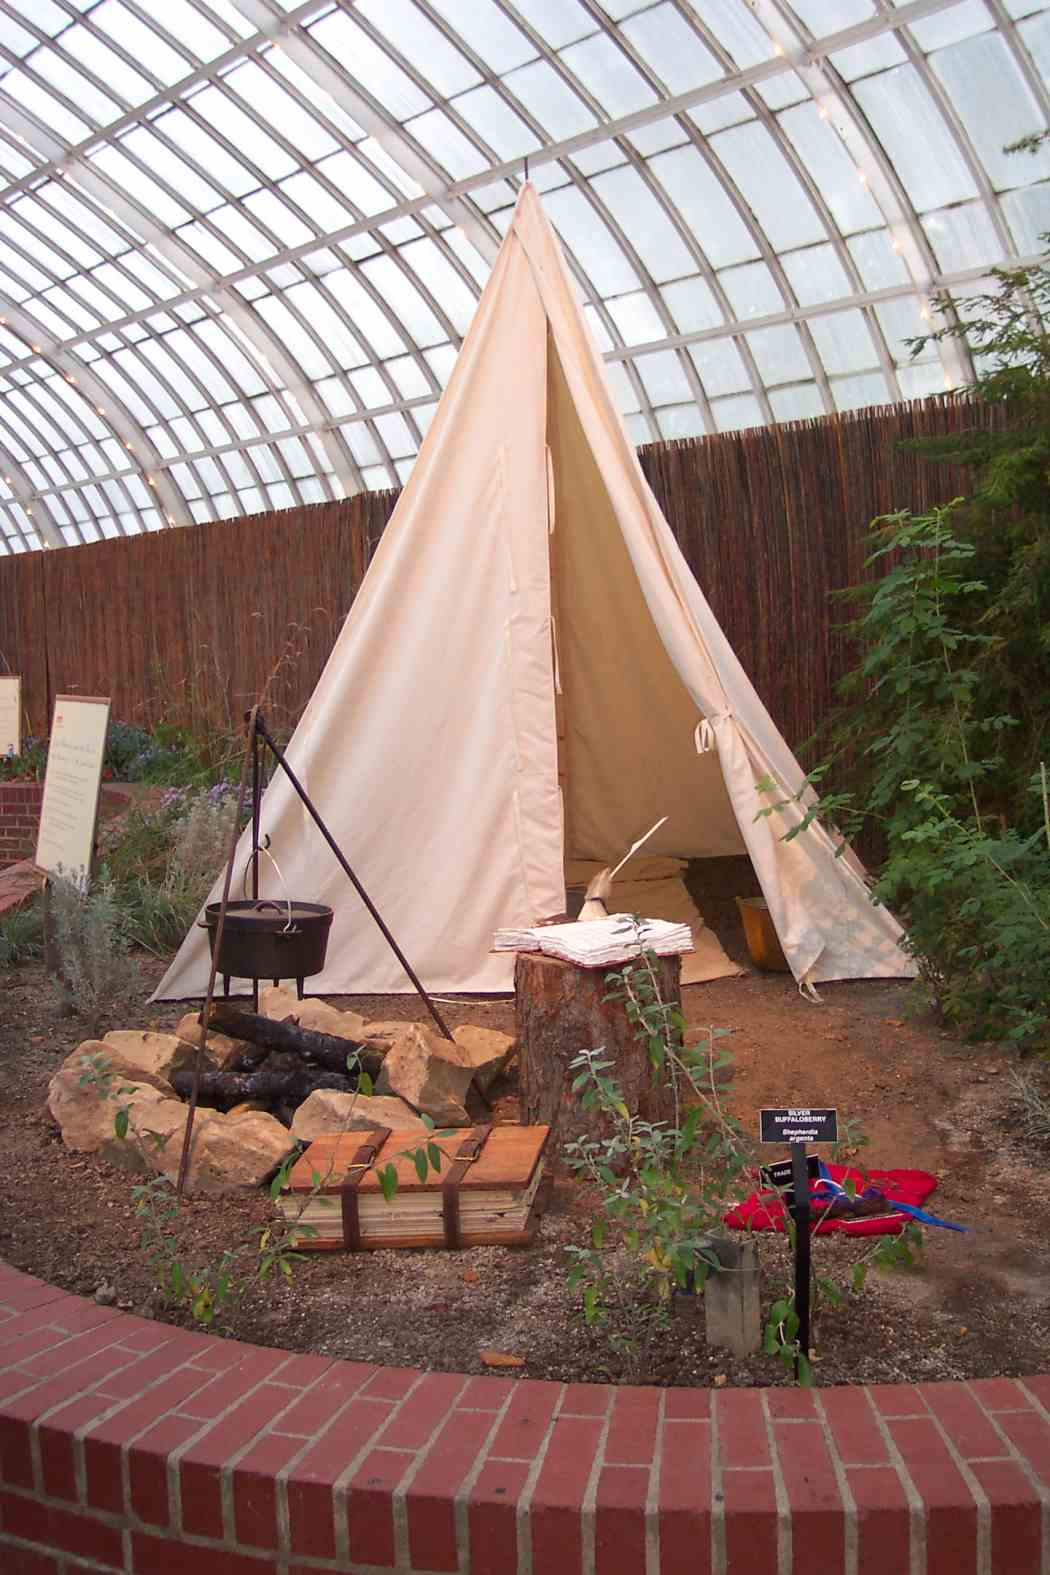 Summer Flower Show 2003: The Adventures of Lewis and Clark